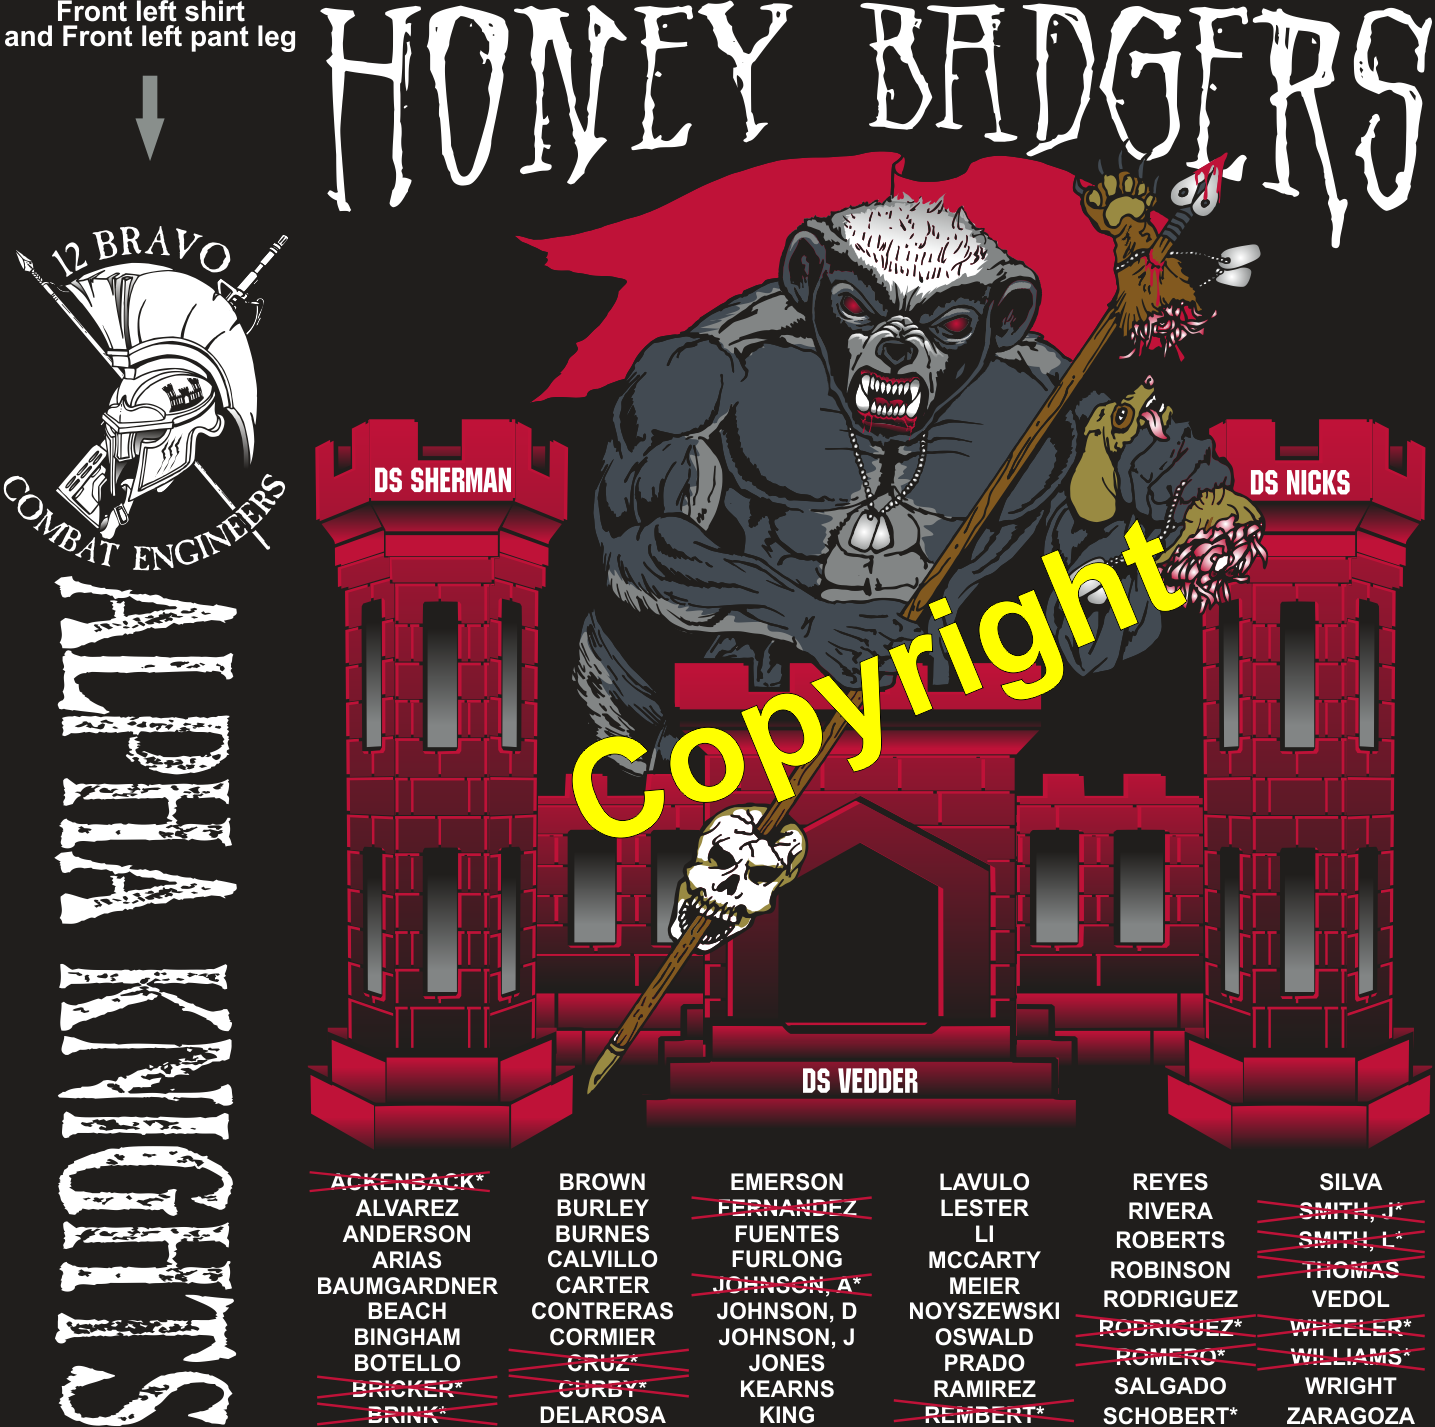 ALPHA 31ST HONEY BADGERS GRADUATING DAY 7-12-2019 digital